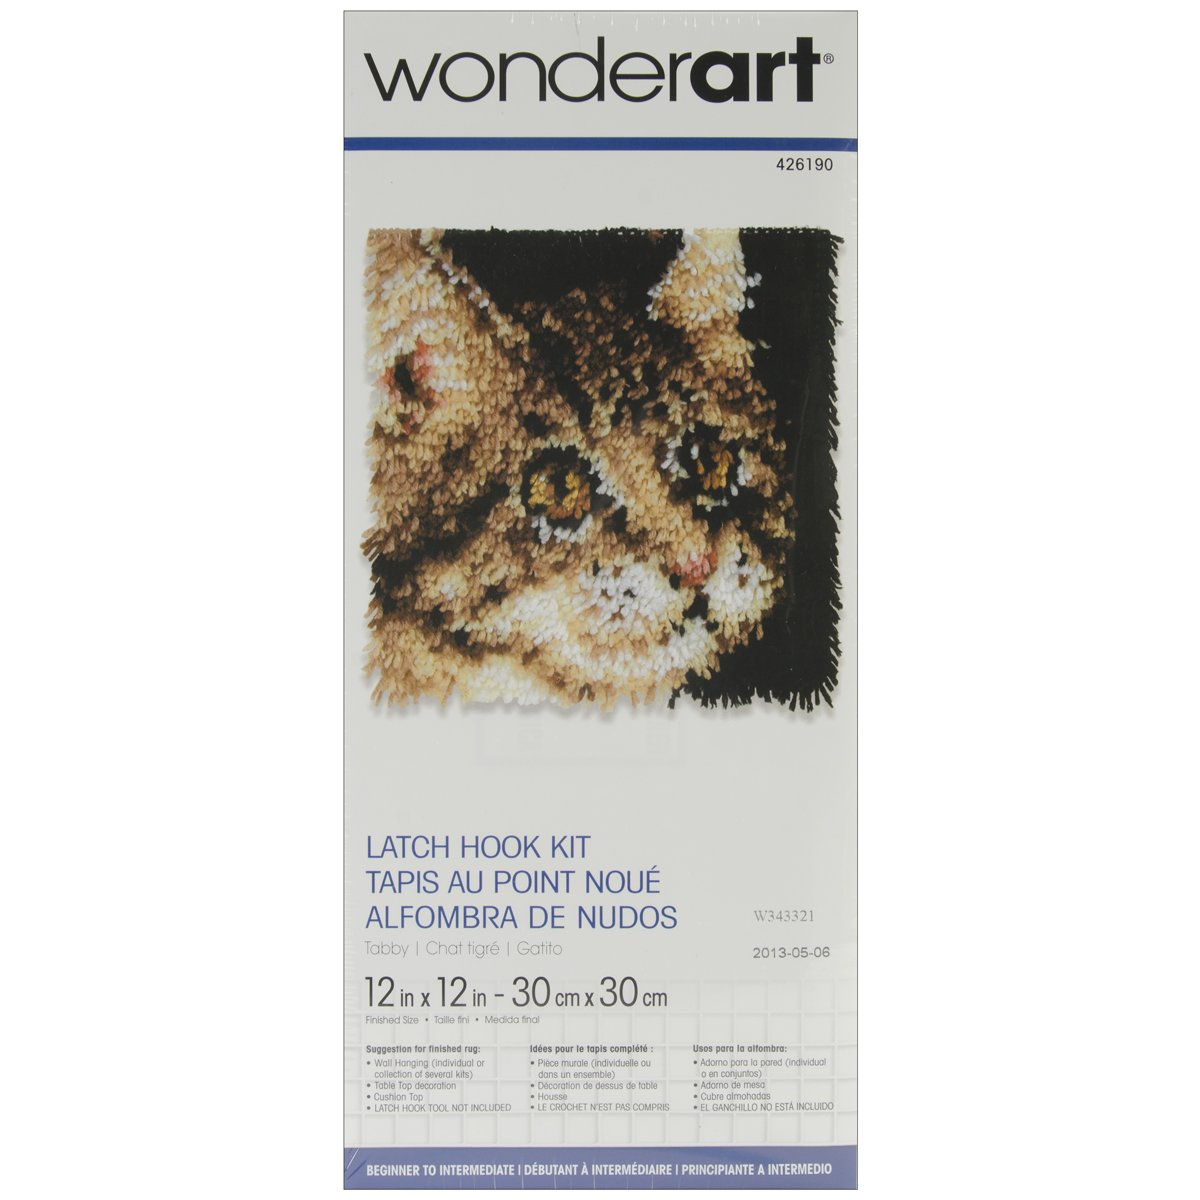 WonderArt 426224C Latch Hook Kit, 12 X 12, Hockey Skates 12 X 12